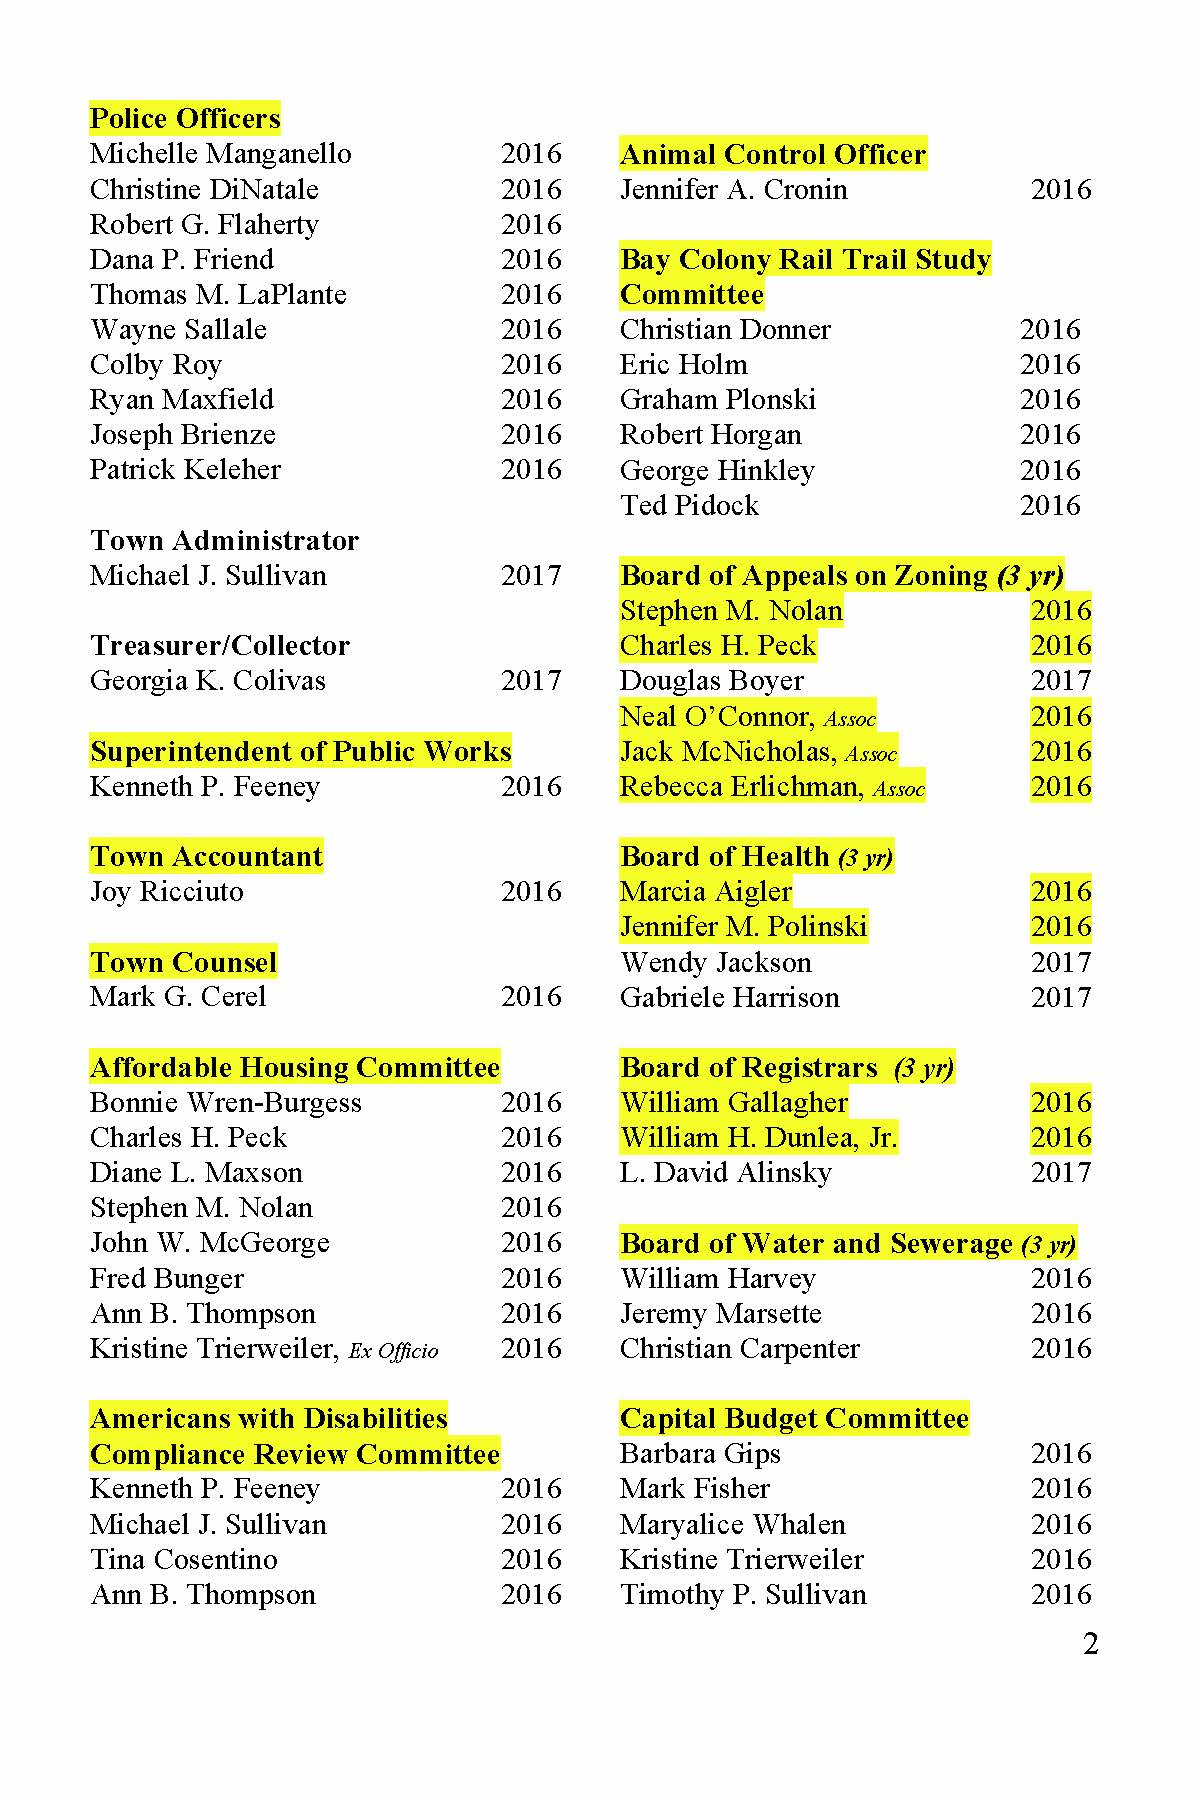 20160525-Elected and Appointed for Annual Report_Page_2